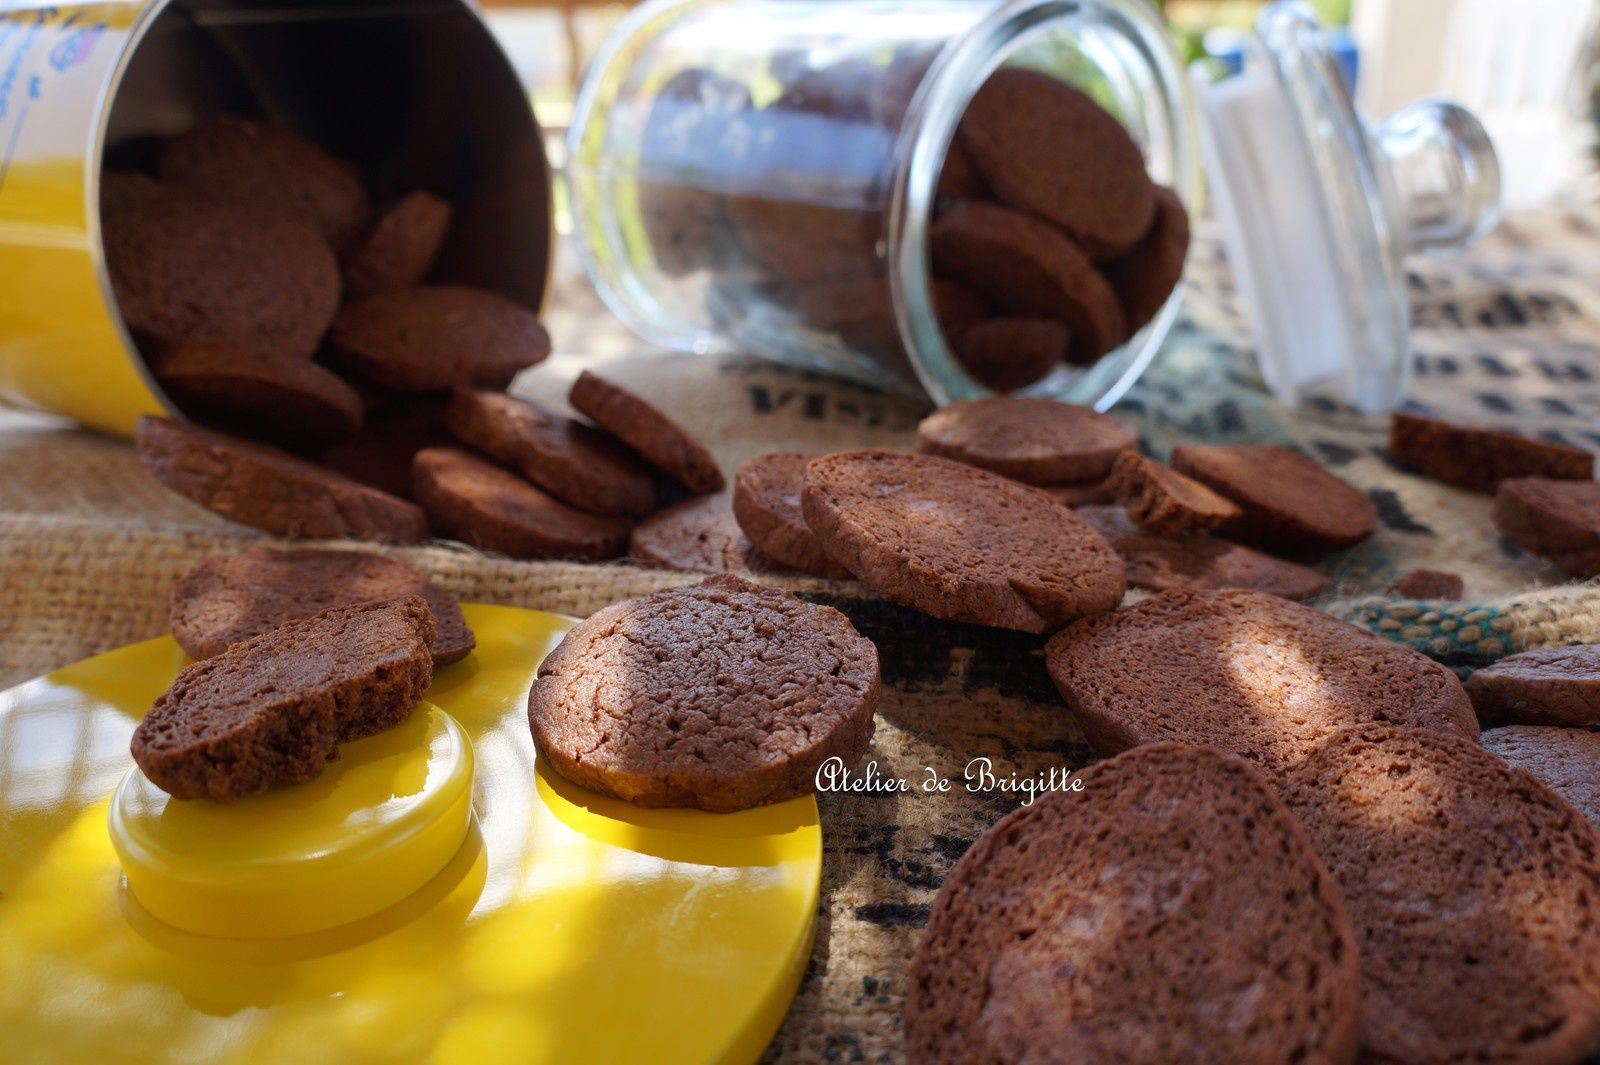 BISCUITS CHOCOLAT ET HUILE OLIVE